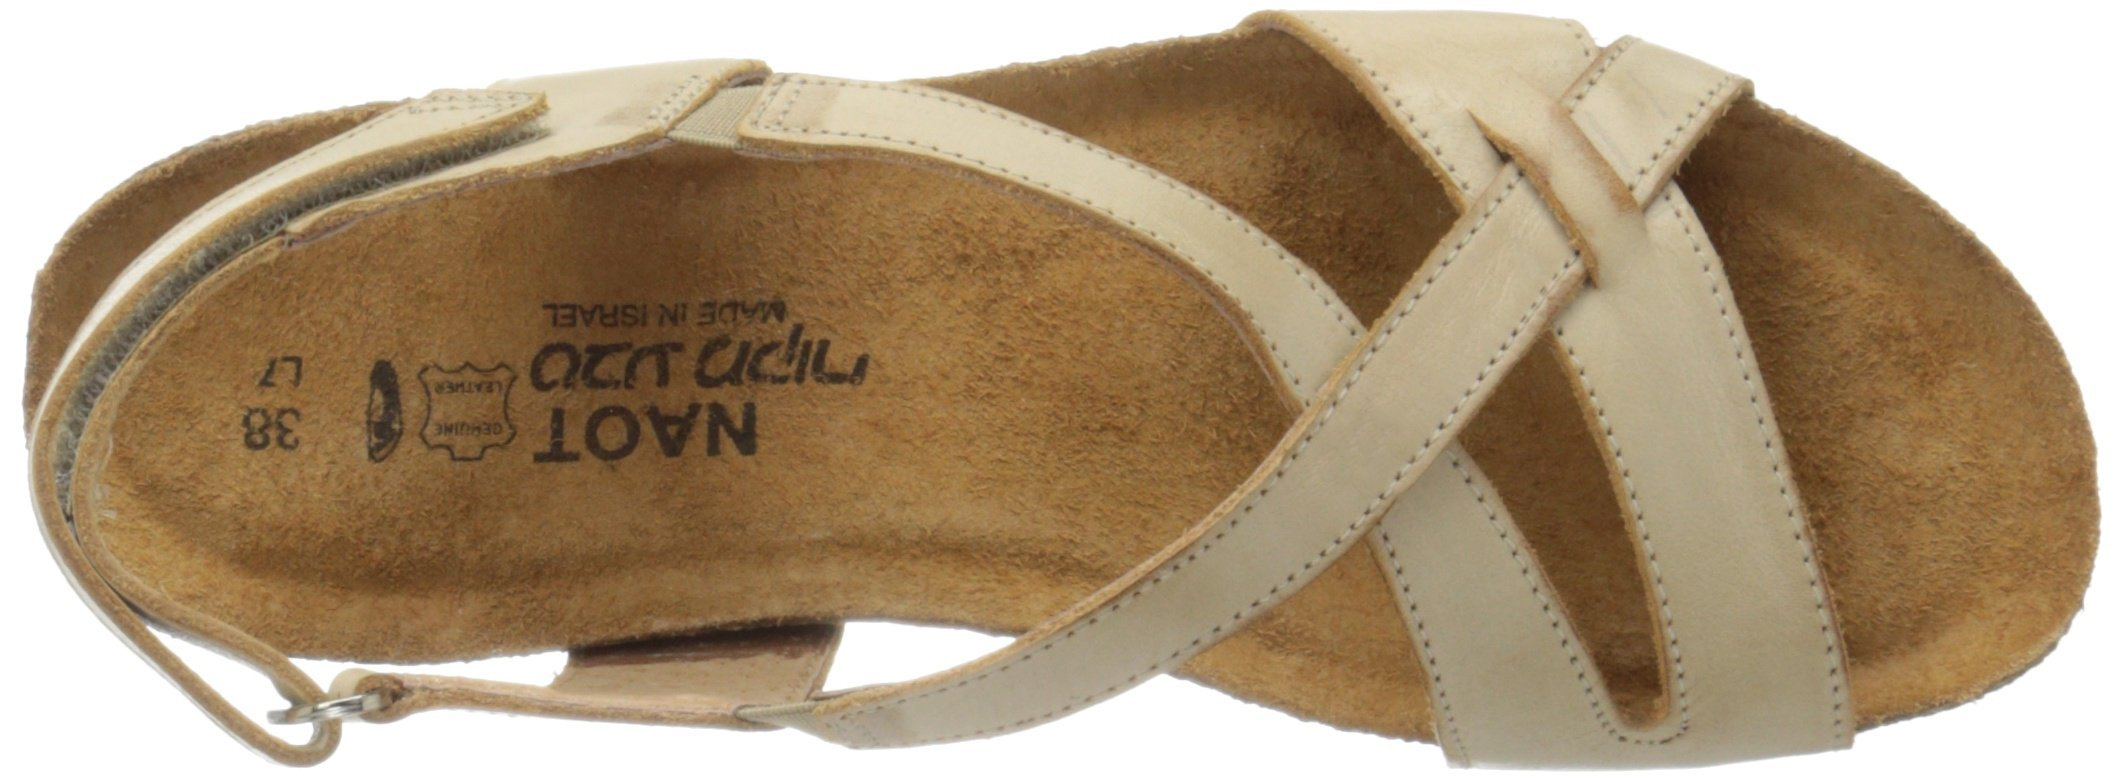 Naot Women's Bernice Wedge Sandal, Biscuit Leather, 35 EU/4.5-5 M US by NAOT (Image #8)